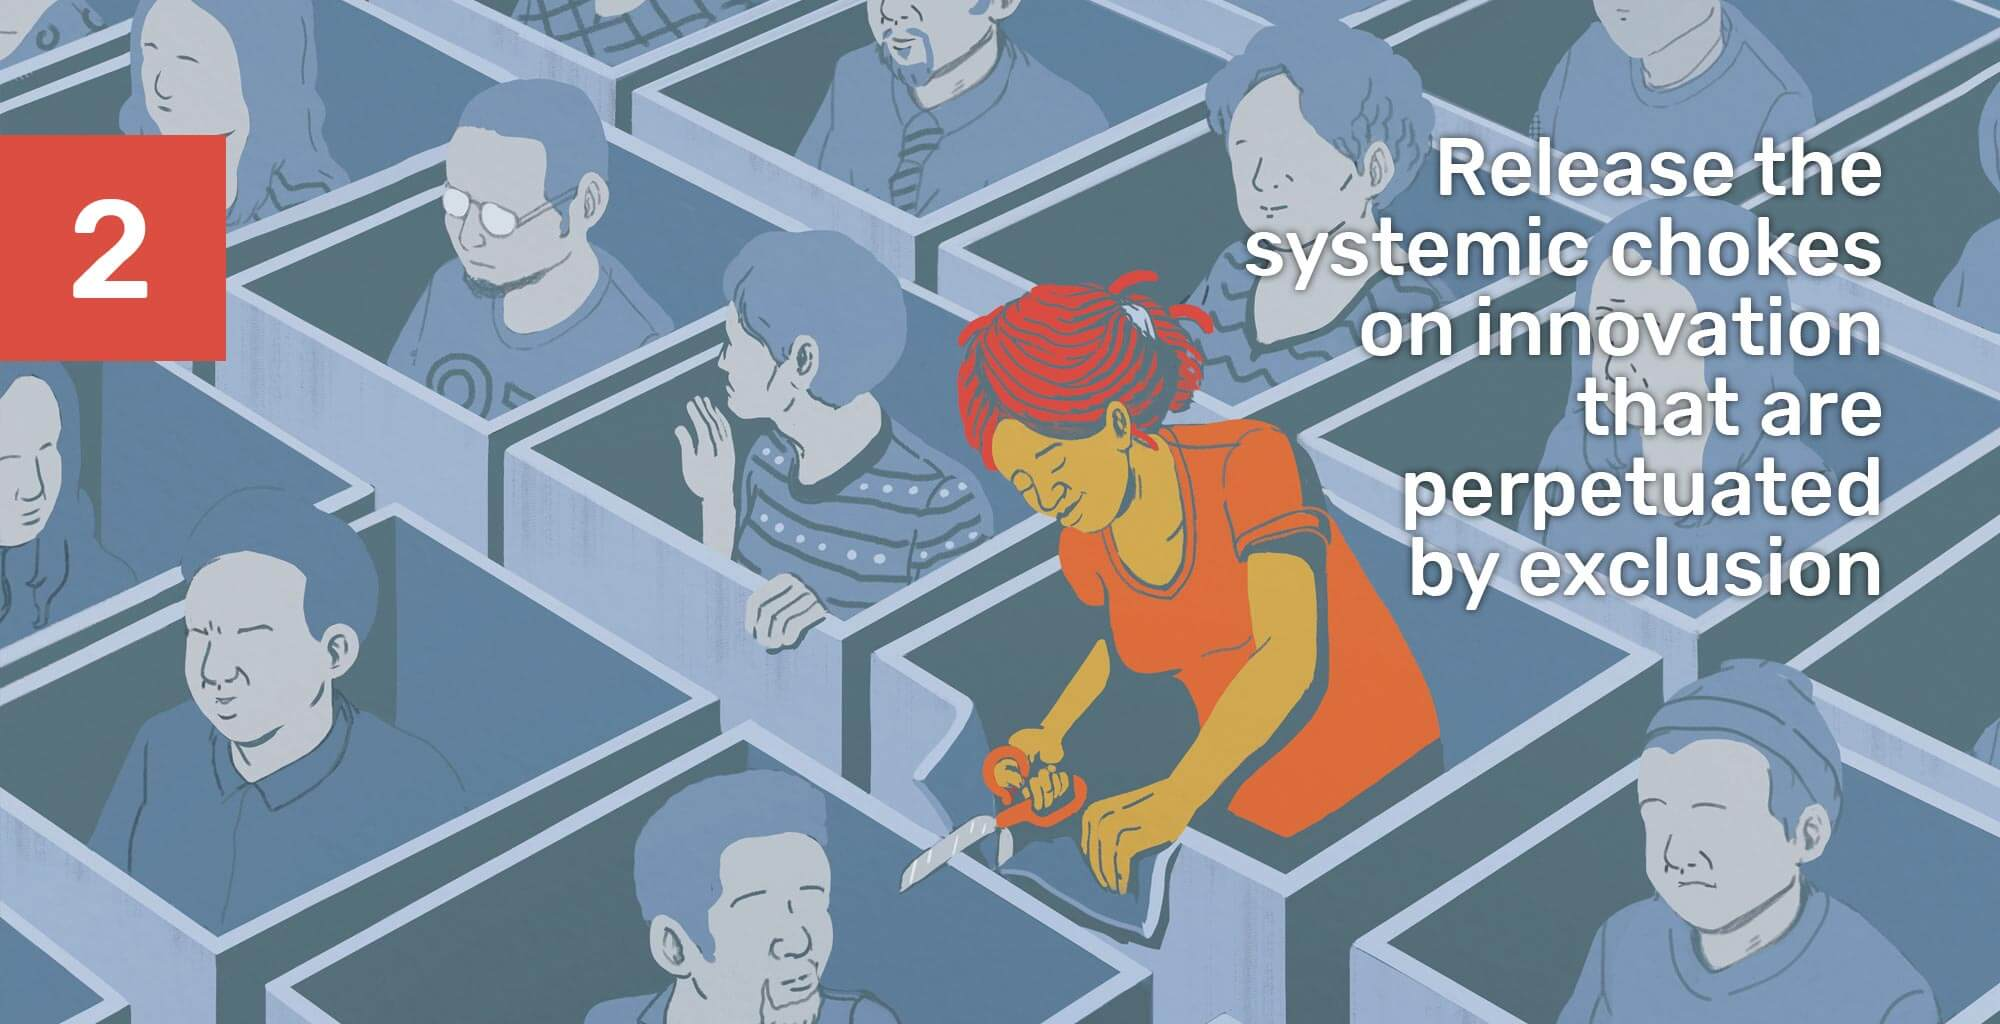 Release the systemic chokes on innovation that are perpetuated by exclusion